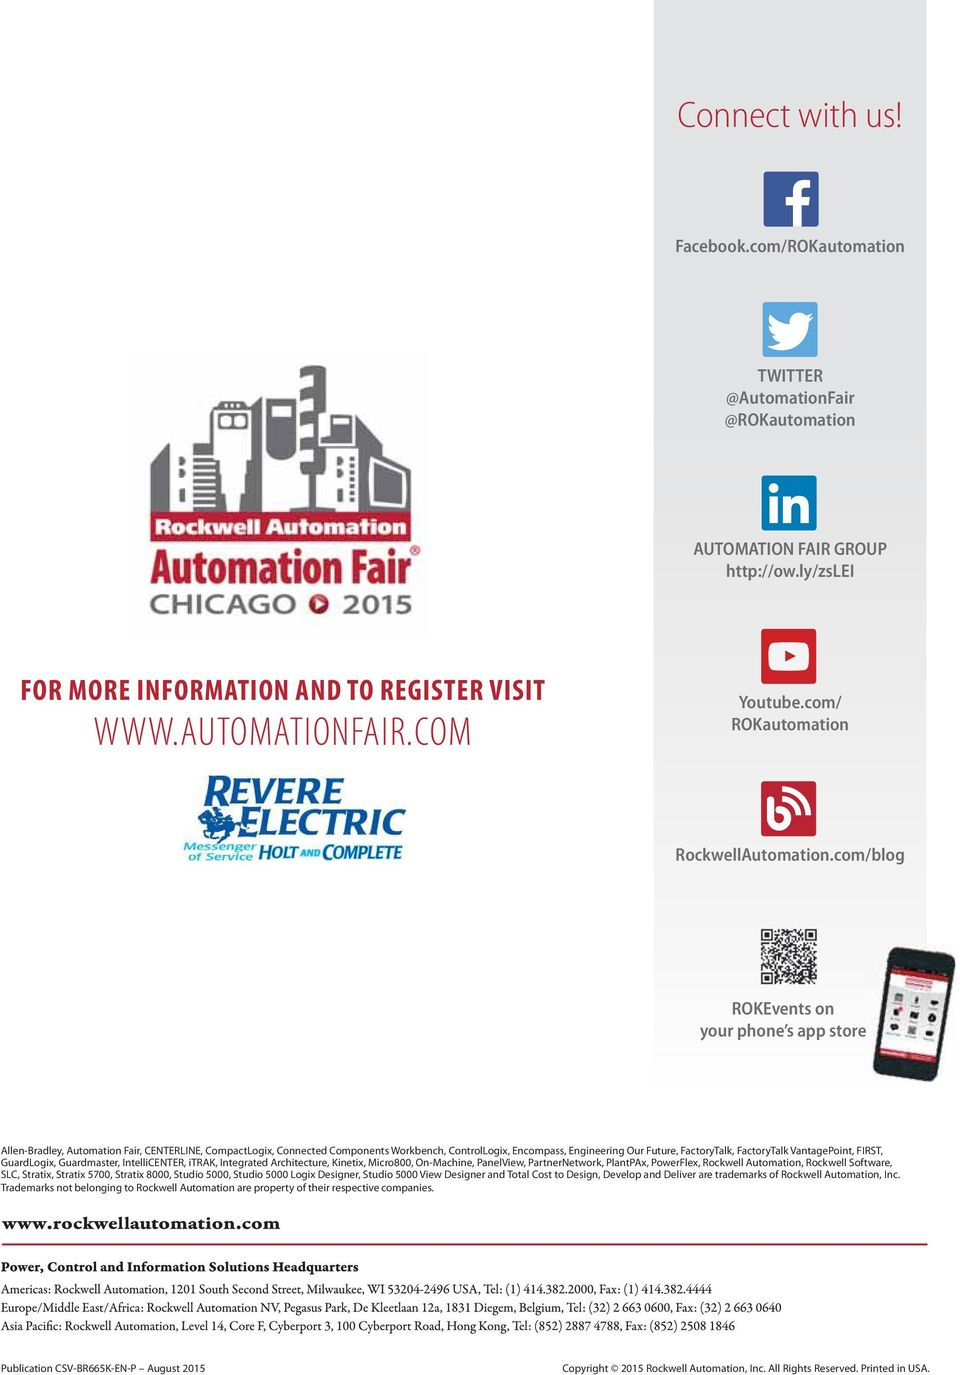 com/blog ROKEvents on your phone s app store Allen-Bradley, Automation Fair, CENTERLINE, CompactLogix, Connected Components Workbench, ControlLogix, Encompass, Engineering Our Future, FactoryTalk,